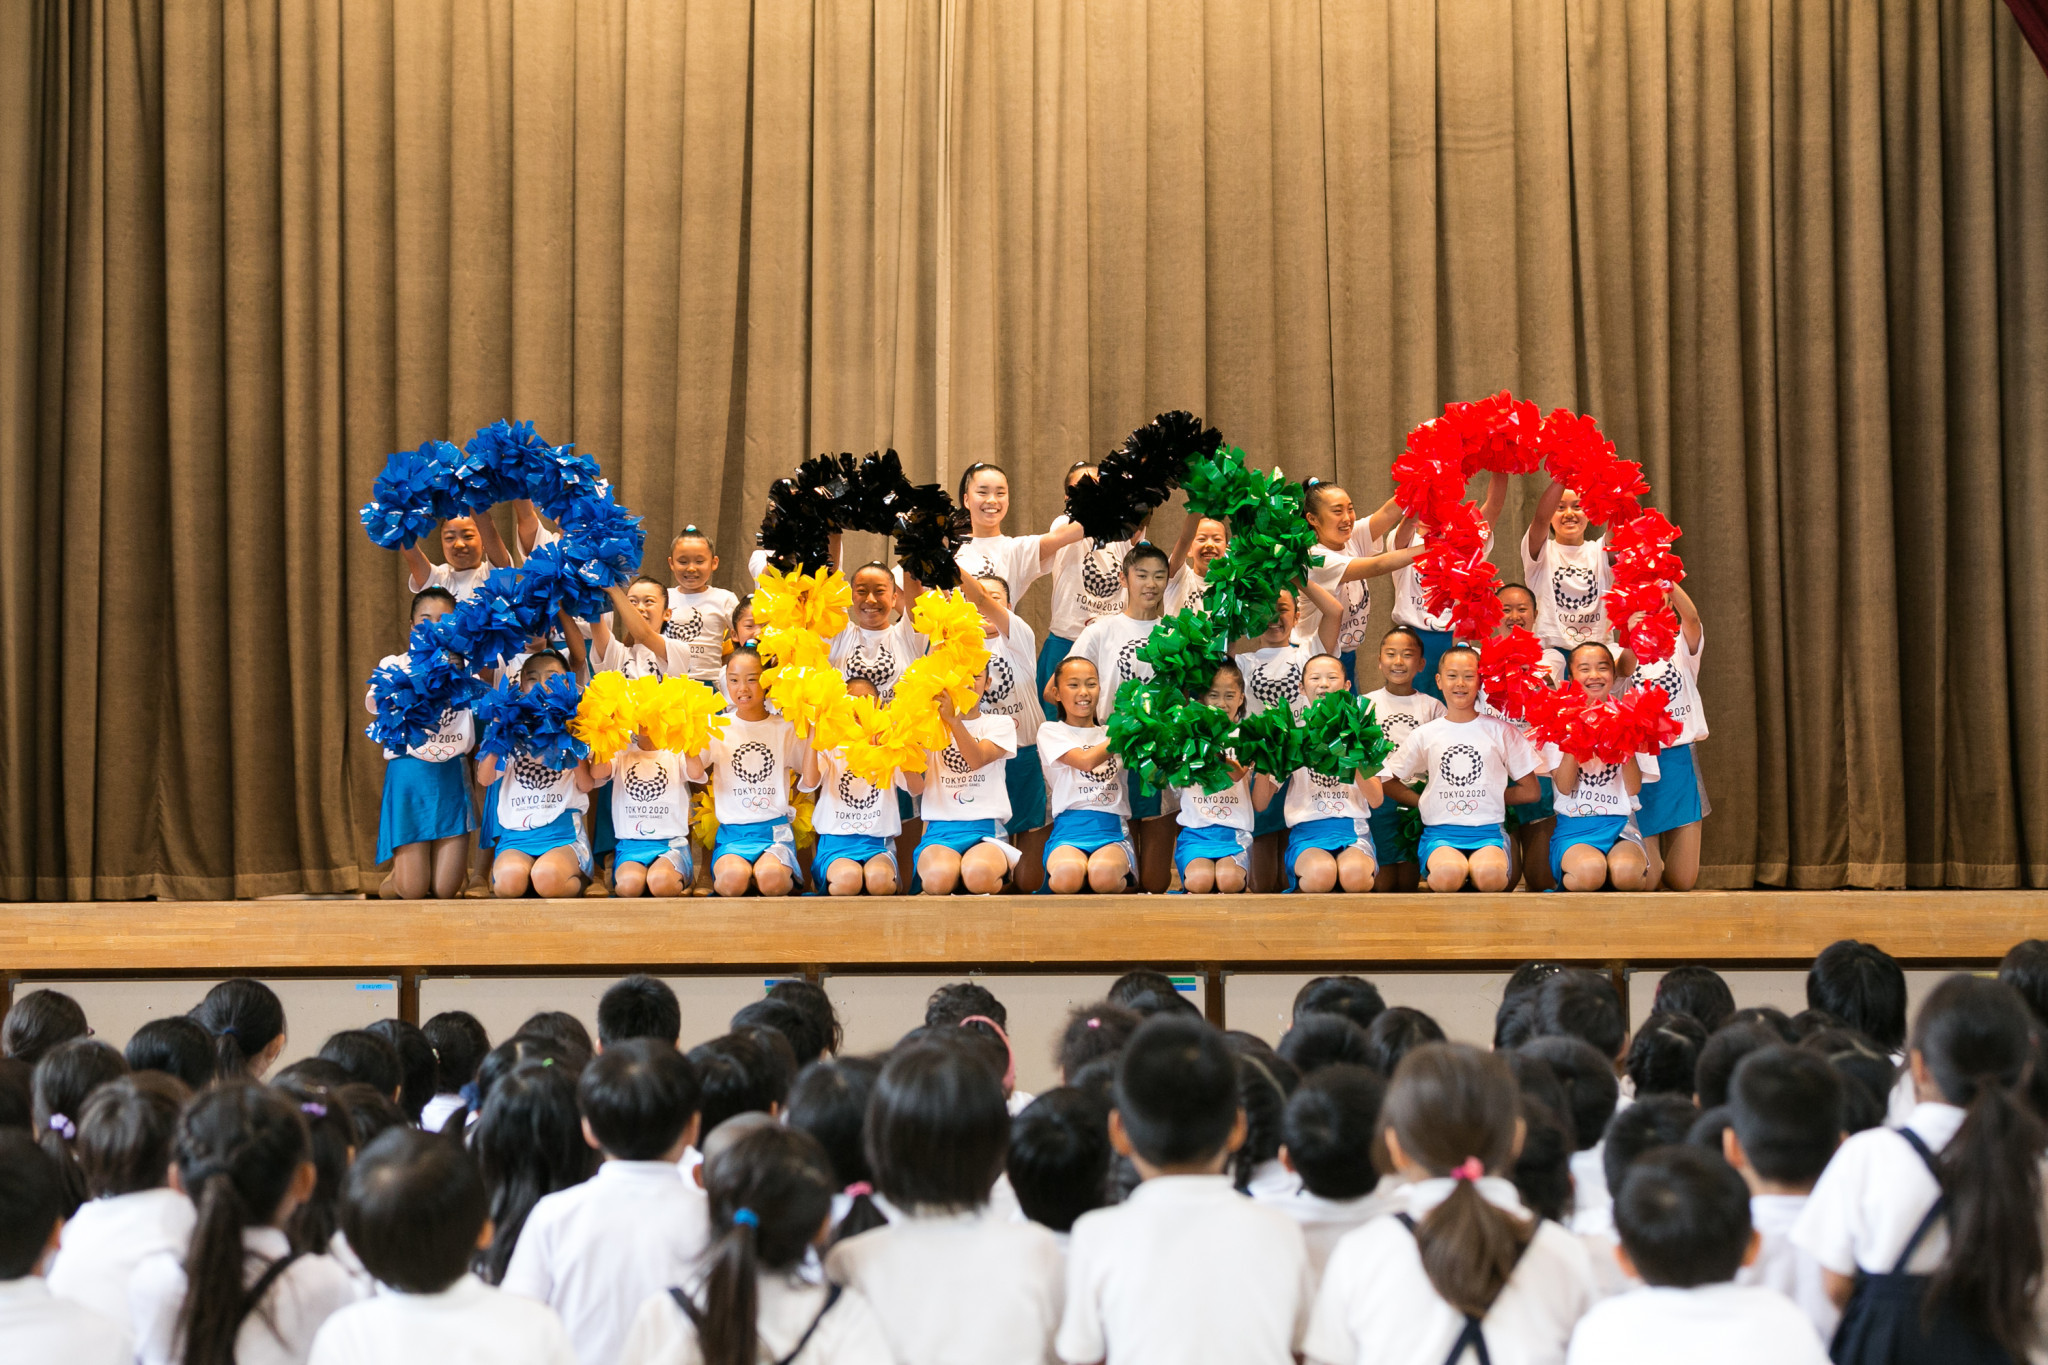 Tokyo 2020 to unveil shortlisted mascot designs on December 7